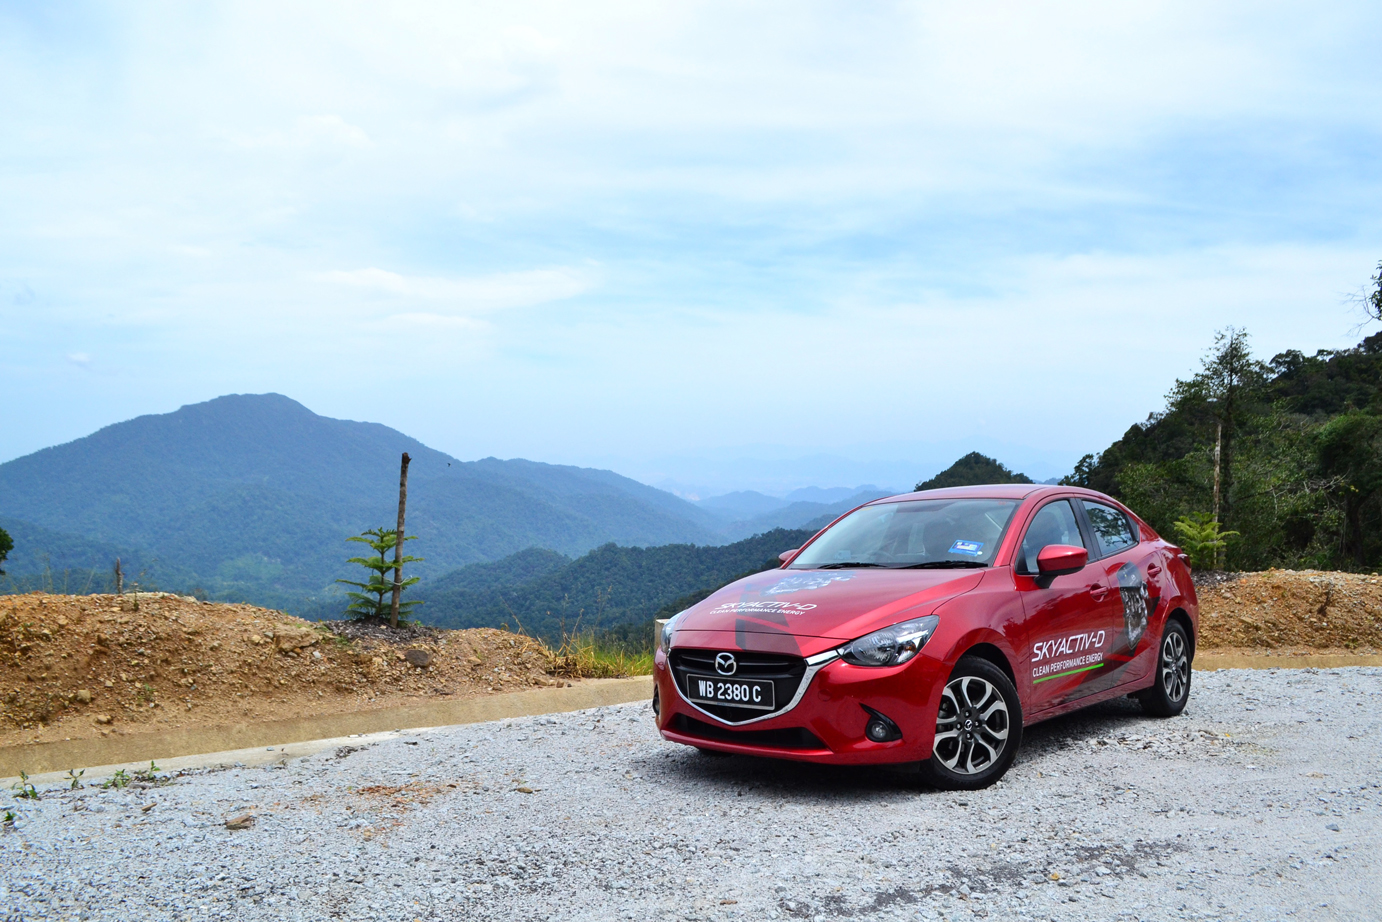 The Mazda 2 Skyactiv D Sedan Great Things Come In Small Packages Kensomuse